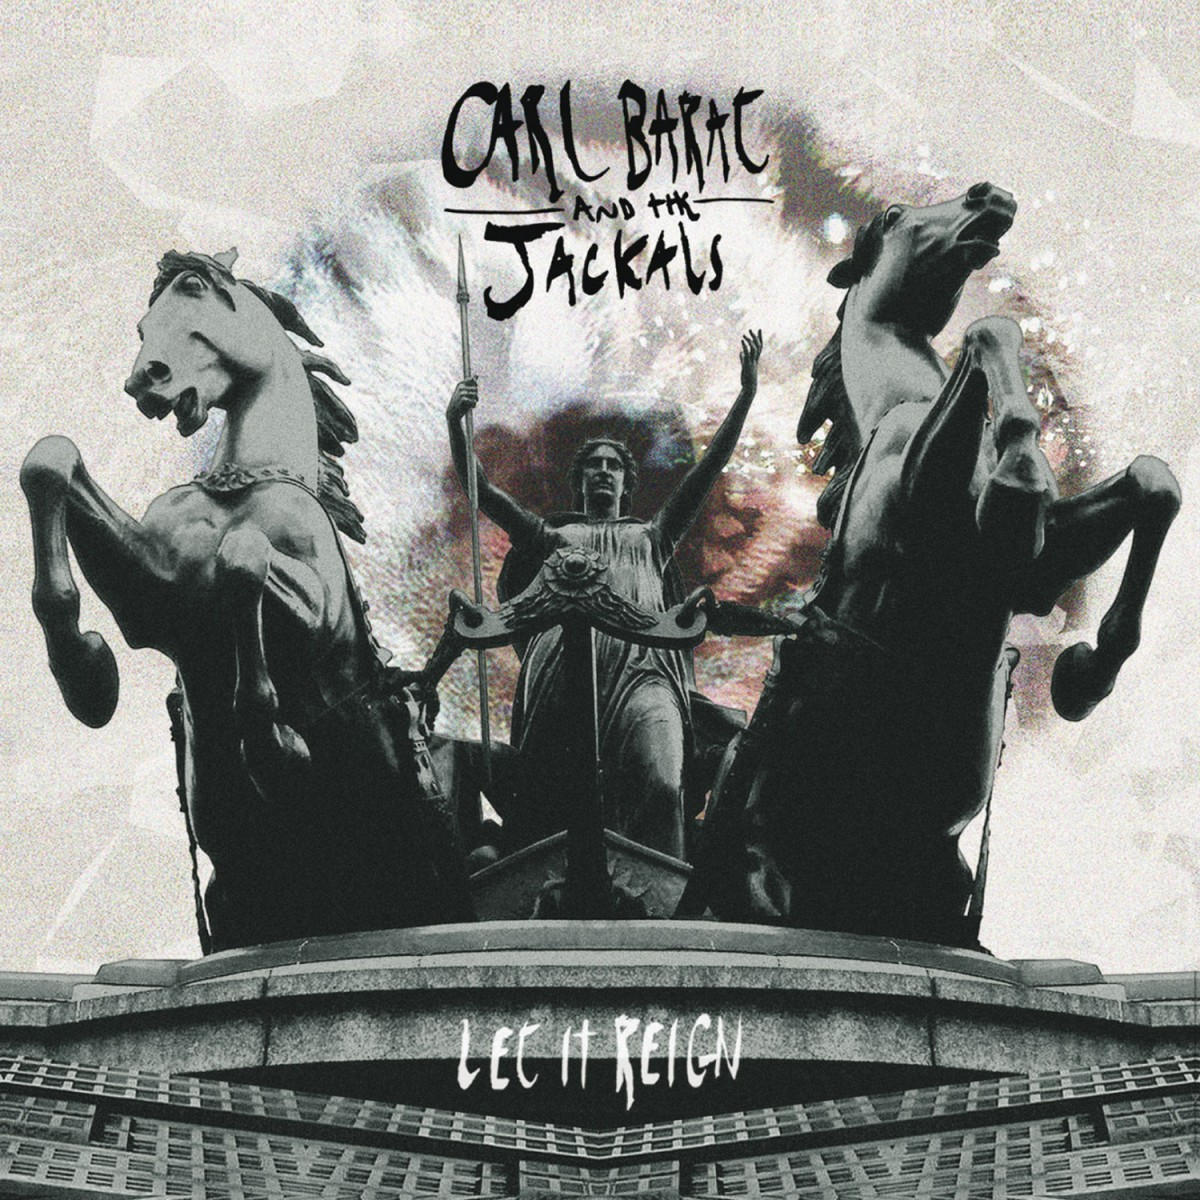 Barat, Carl and the Jackals: Let It Reign (2015)